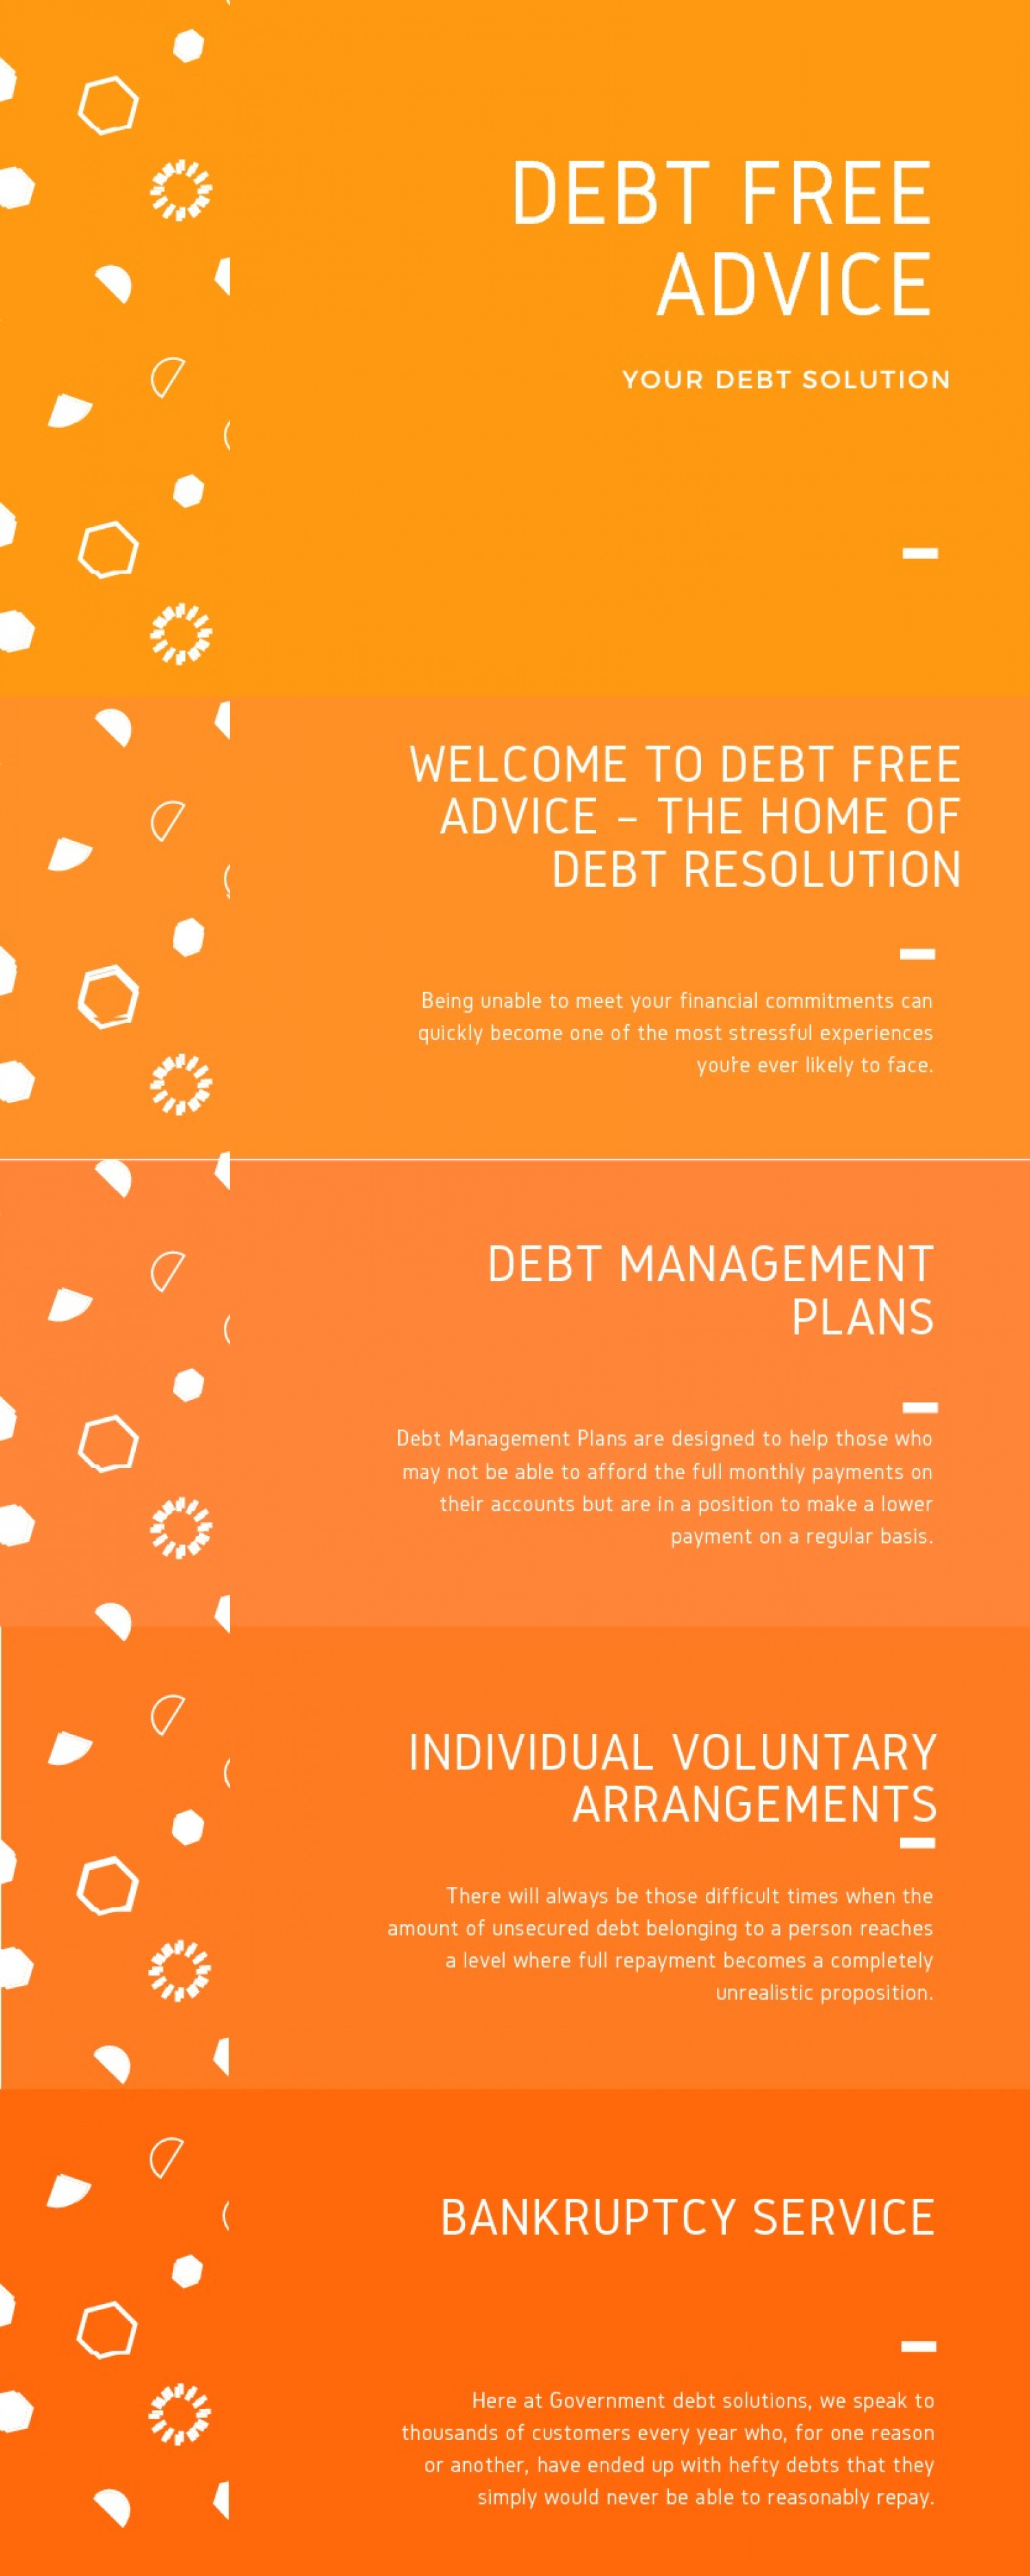 DEBT FREE ADVICE Infographic